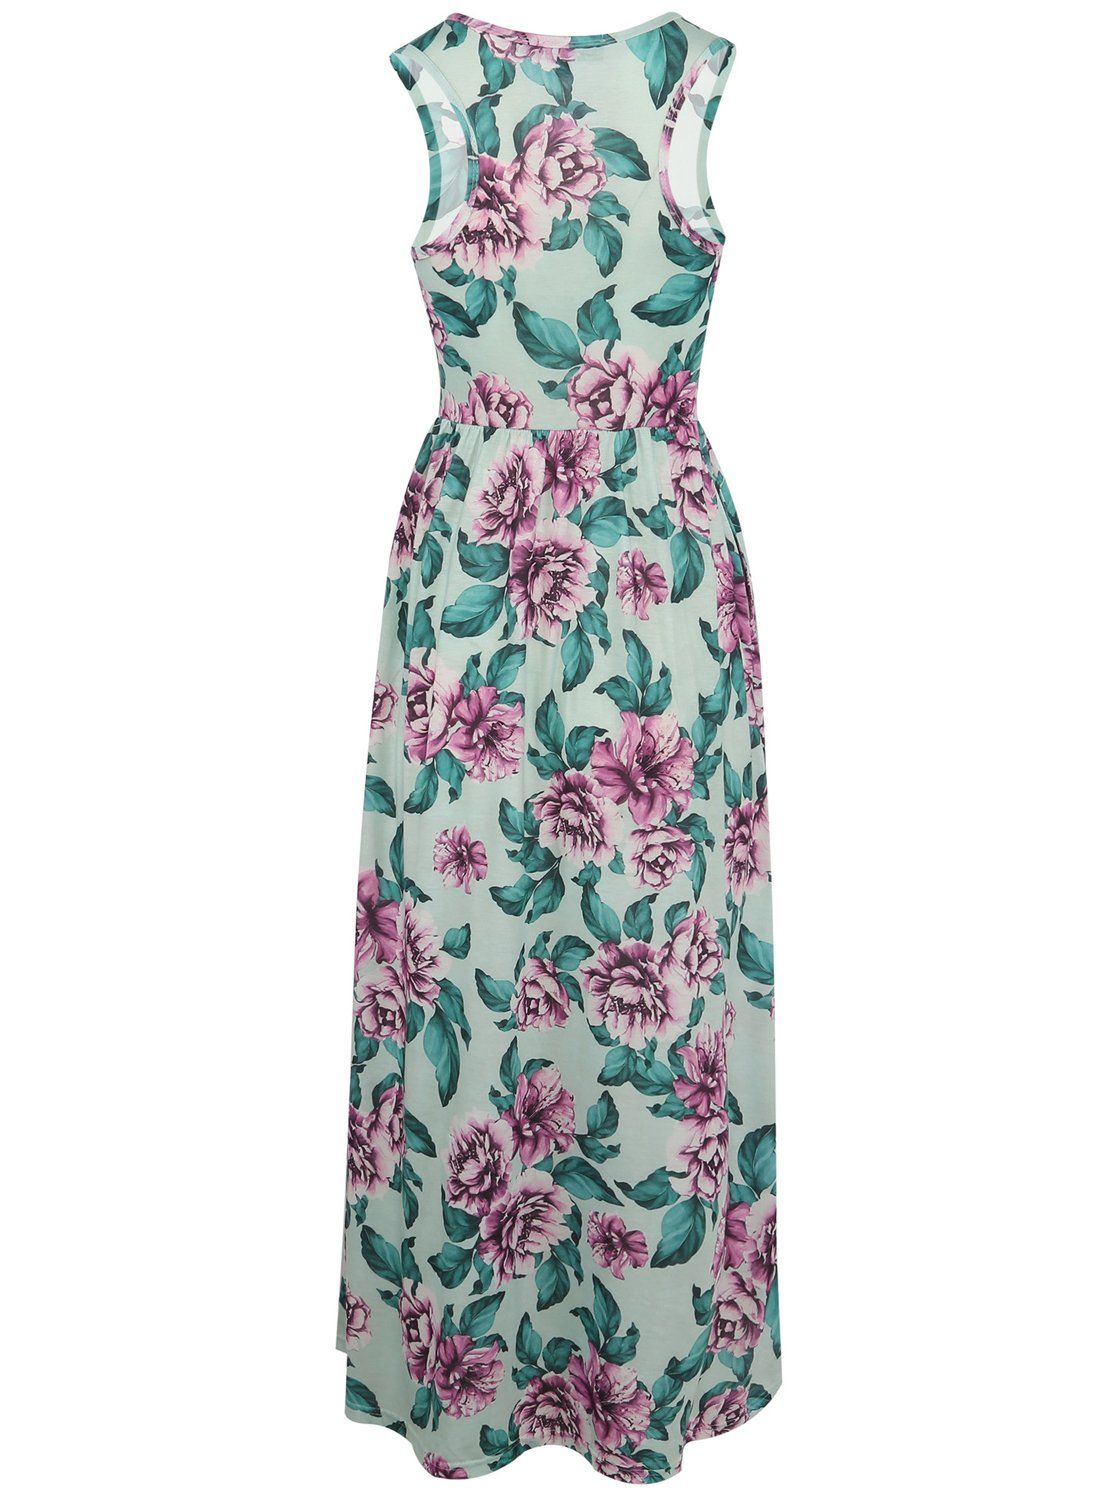 Women maternity clothes helyo womens summer floral print